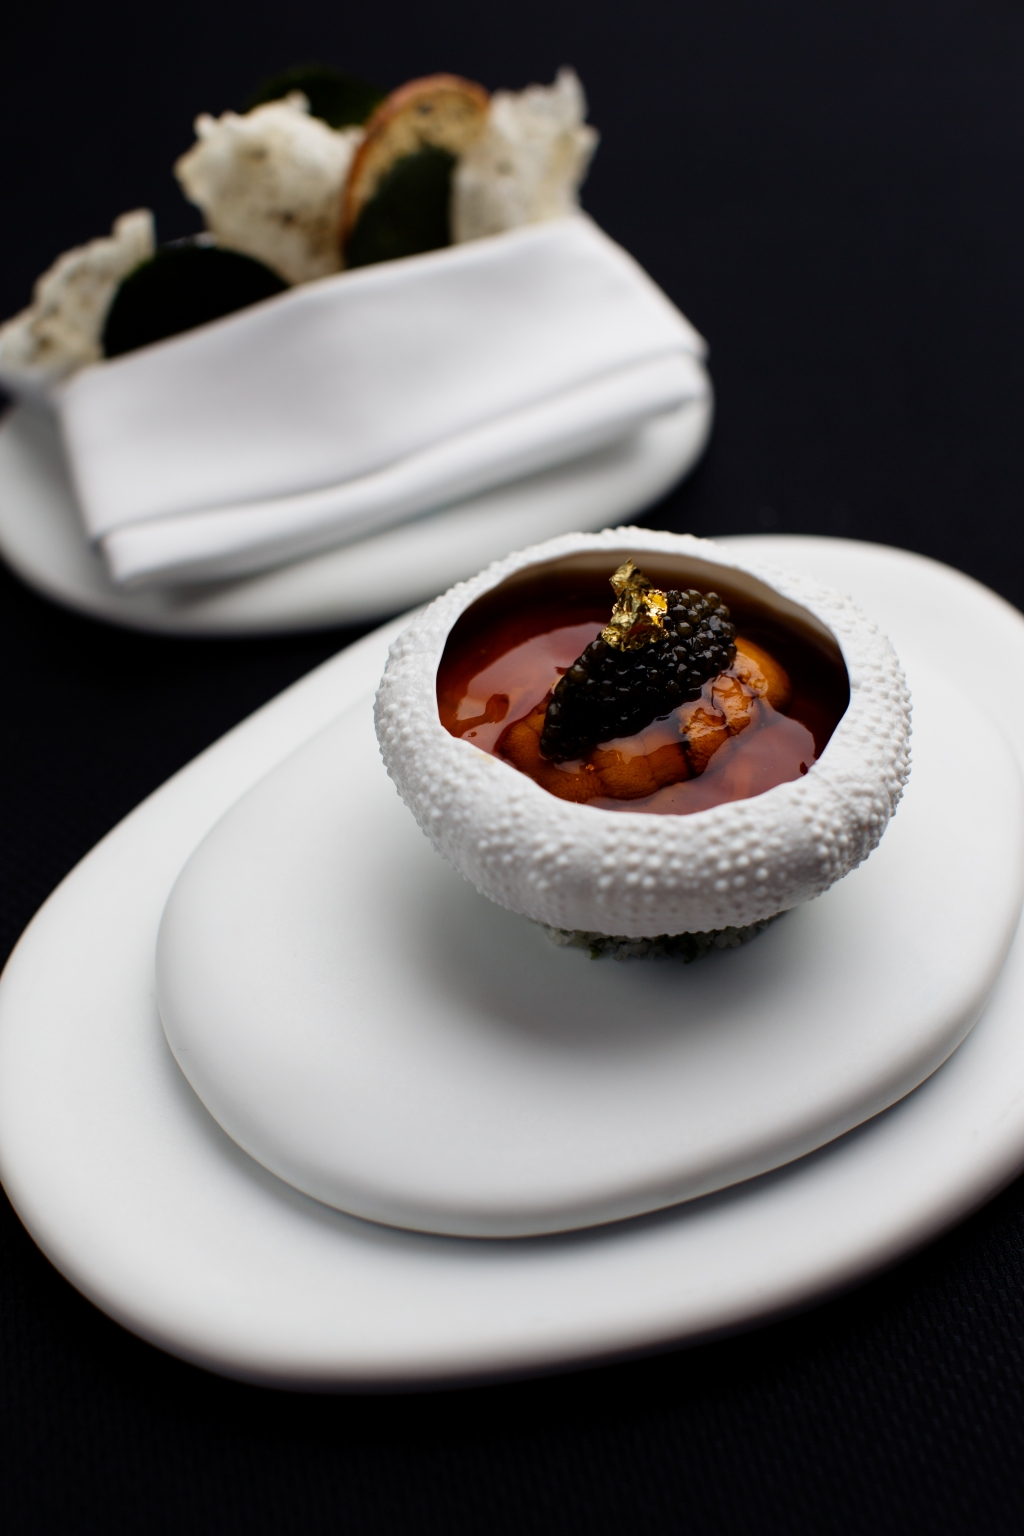 Hokkaido Sea Urchin in a Lobster Jell-O with Cauliflower, Caviar and Crispy Seaweed Waffles